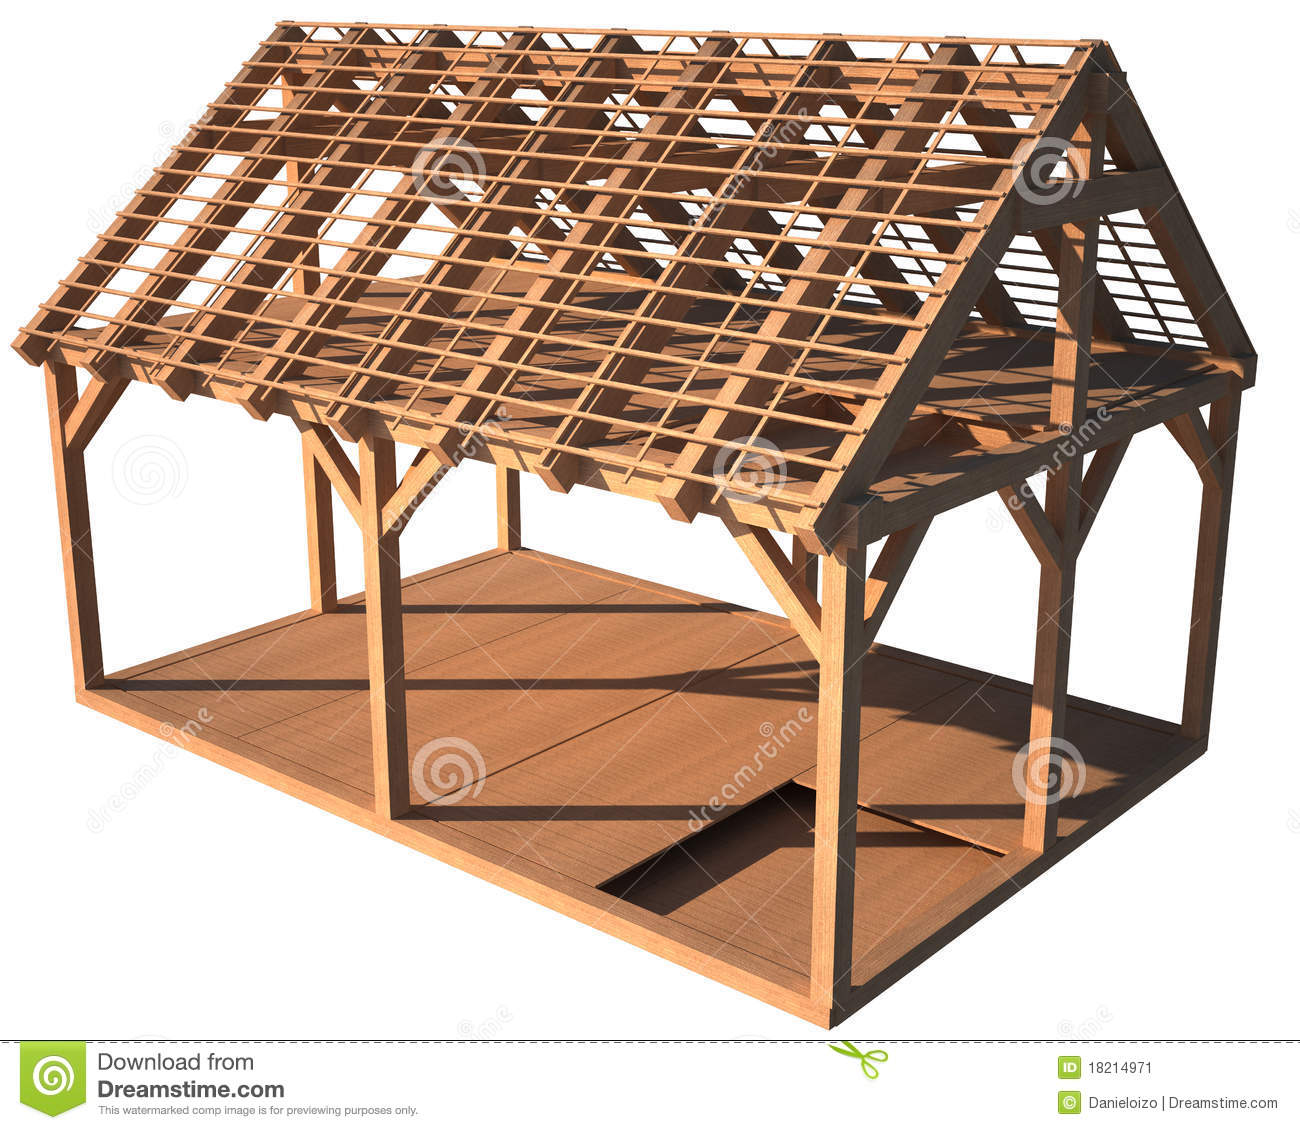 Structure en bois de chambre illustration stock for Structure de bois